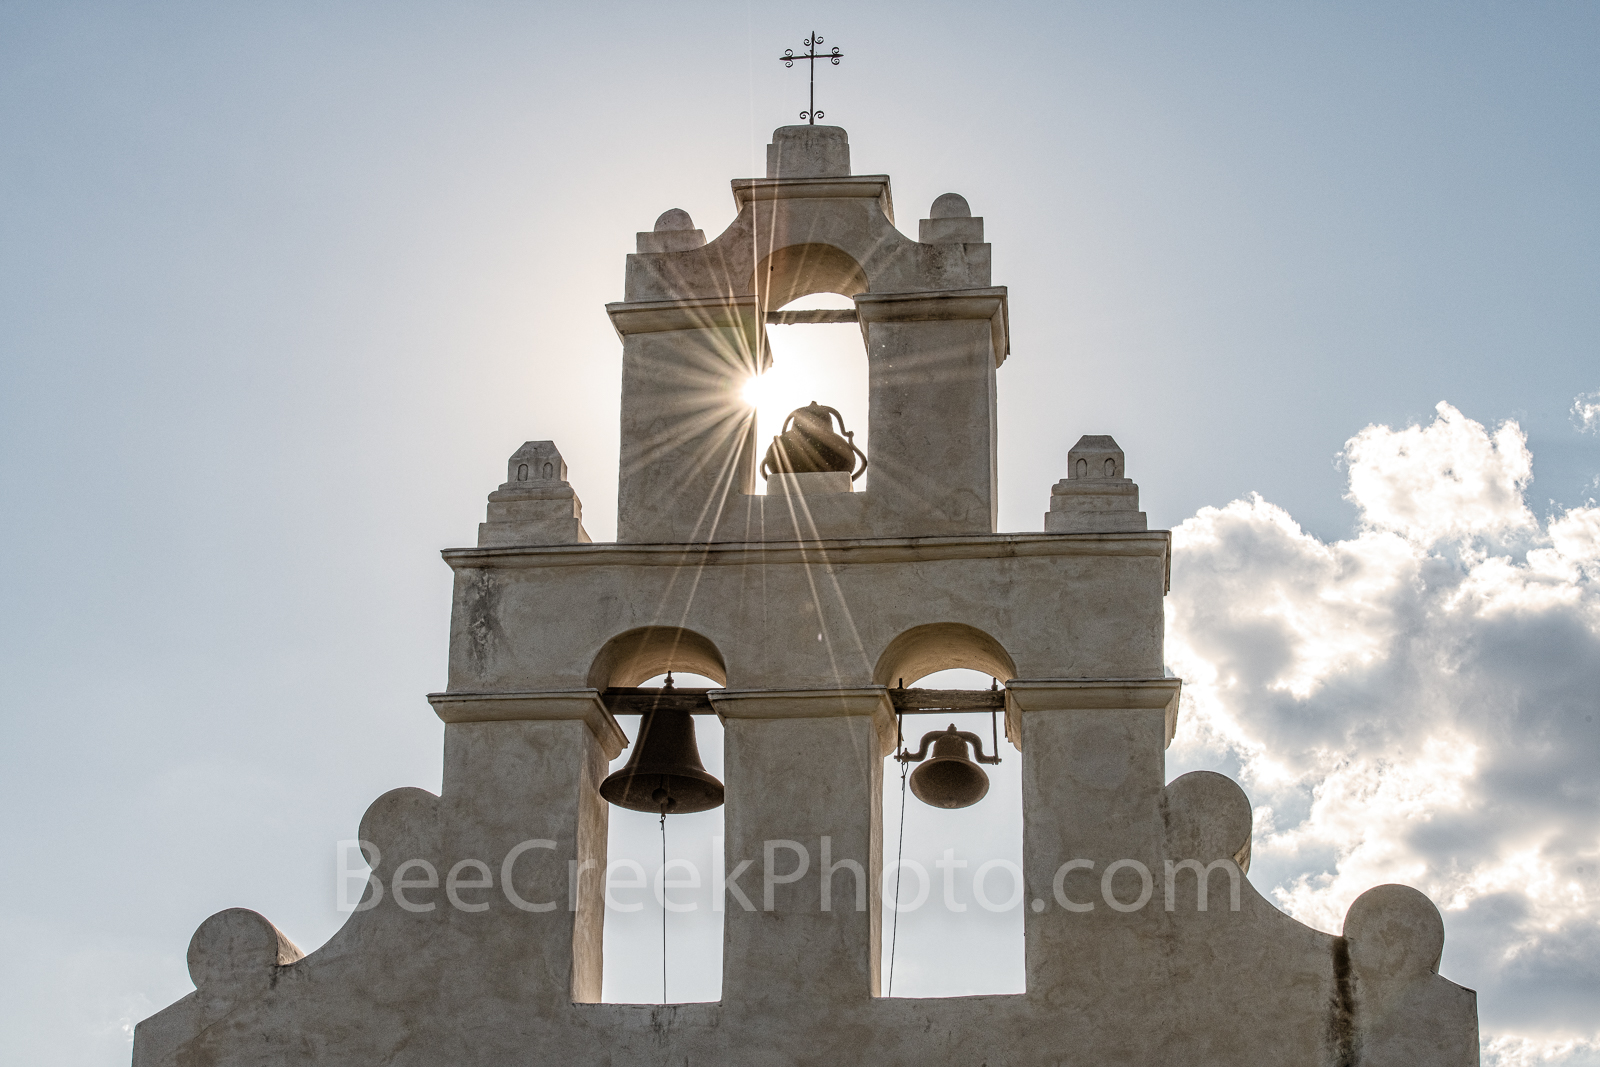 San Antonio, San Juan Mission, bells tower, sun rays, sparkle, Missions, San Juan Mission Bell Tower, tourist, close up, Texas missions, landmarks, churches, chruch, catholic, prints, canvas, metal, b, photo